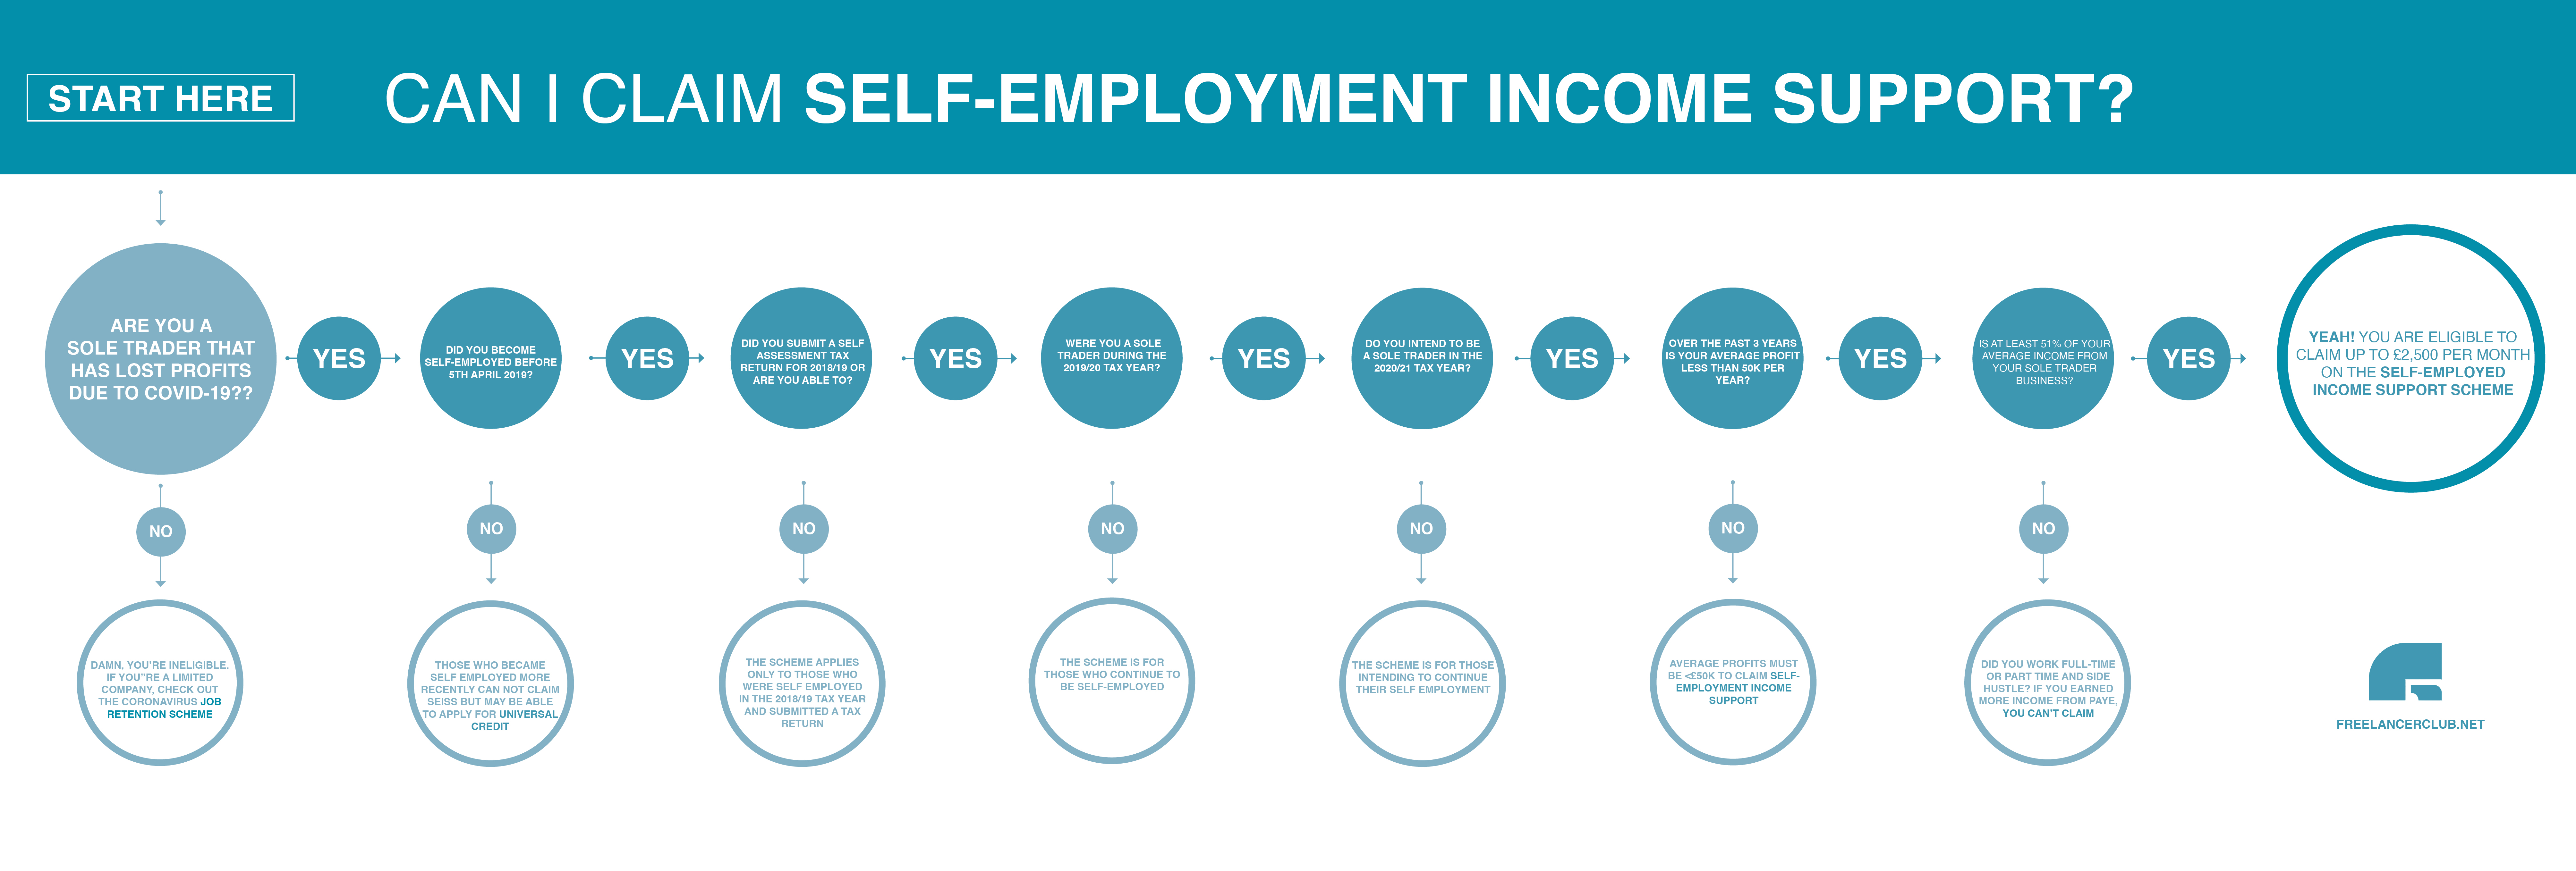 Self-Employed Income Support Scheme Infographic